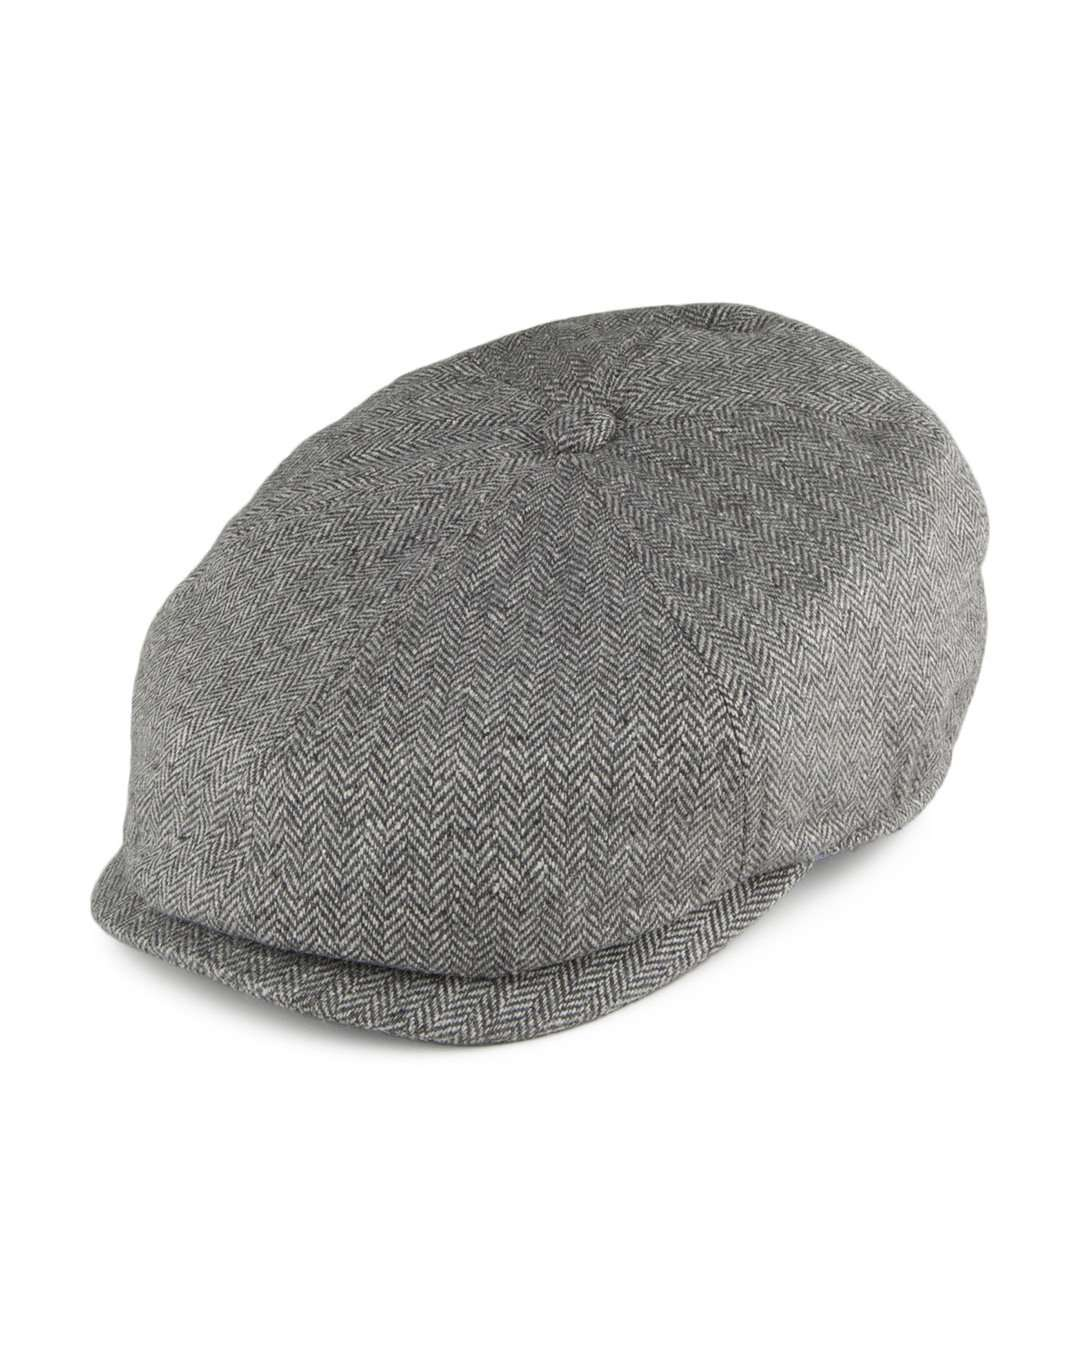 Failsworth Grey Silk Mix Hudson Newsboy Cap - Revolver Menswear Bawtry